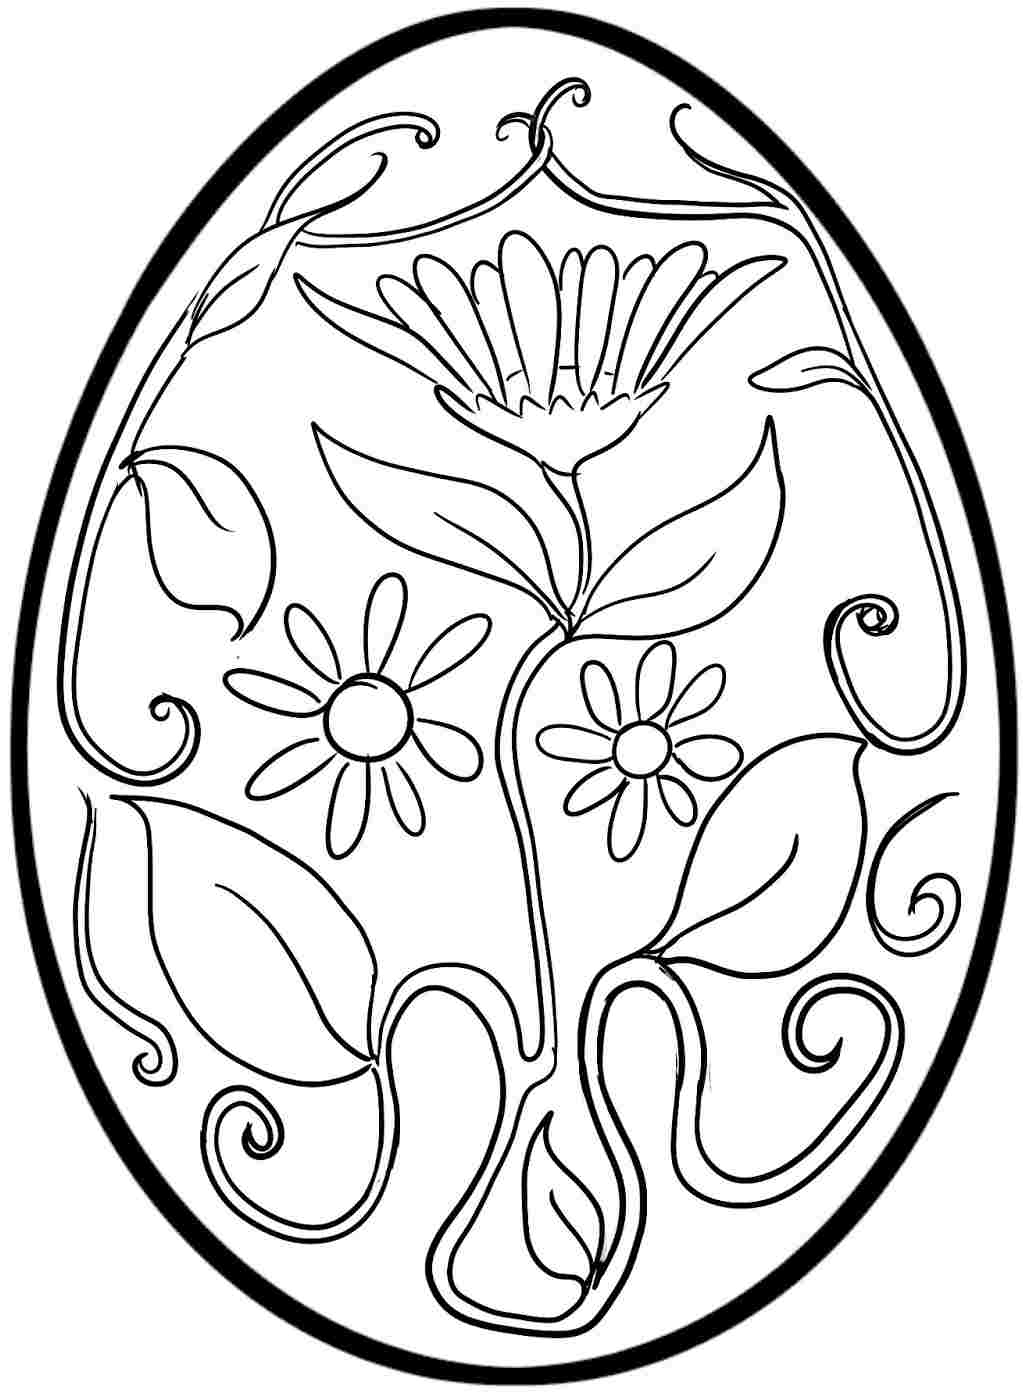 Religious Easter Egg Coloring Pages At Getdrawings Com Free For